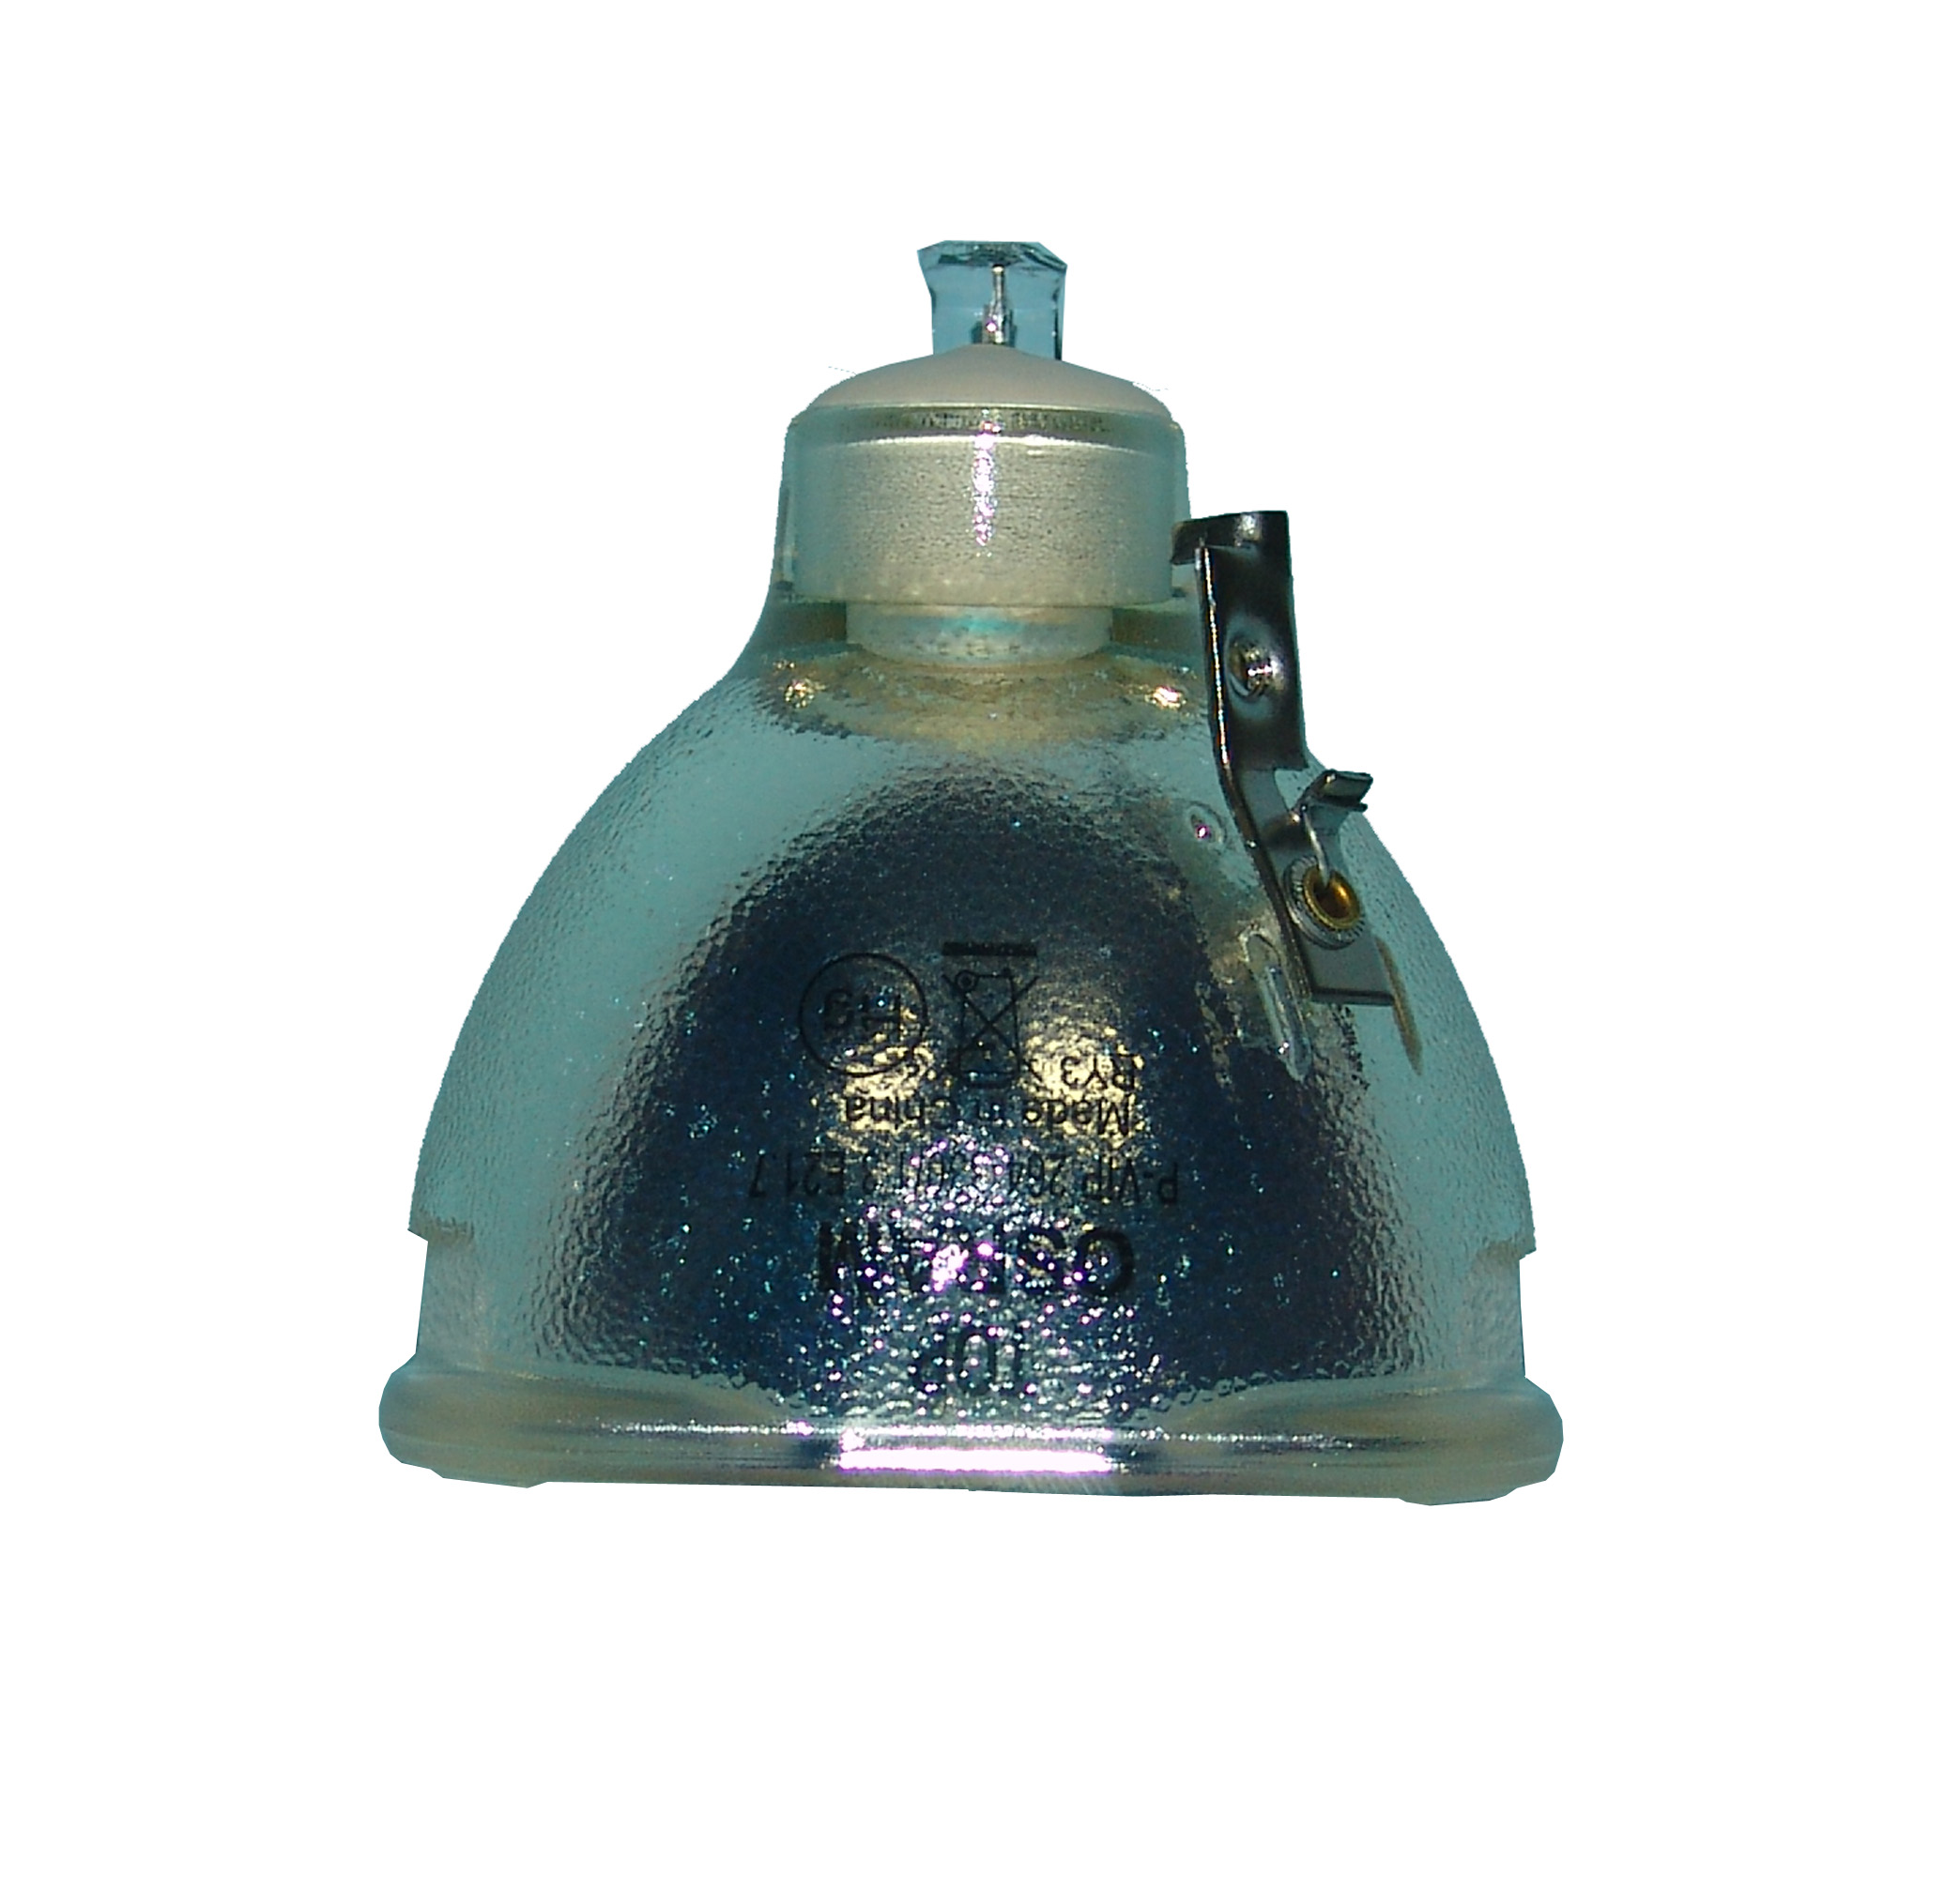 Original Osram Projector Lamp Replacement for Osram 69111-1 (Bulb Only) - image 3 of 5